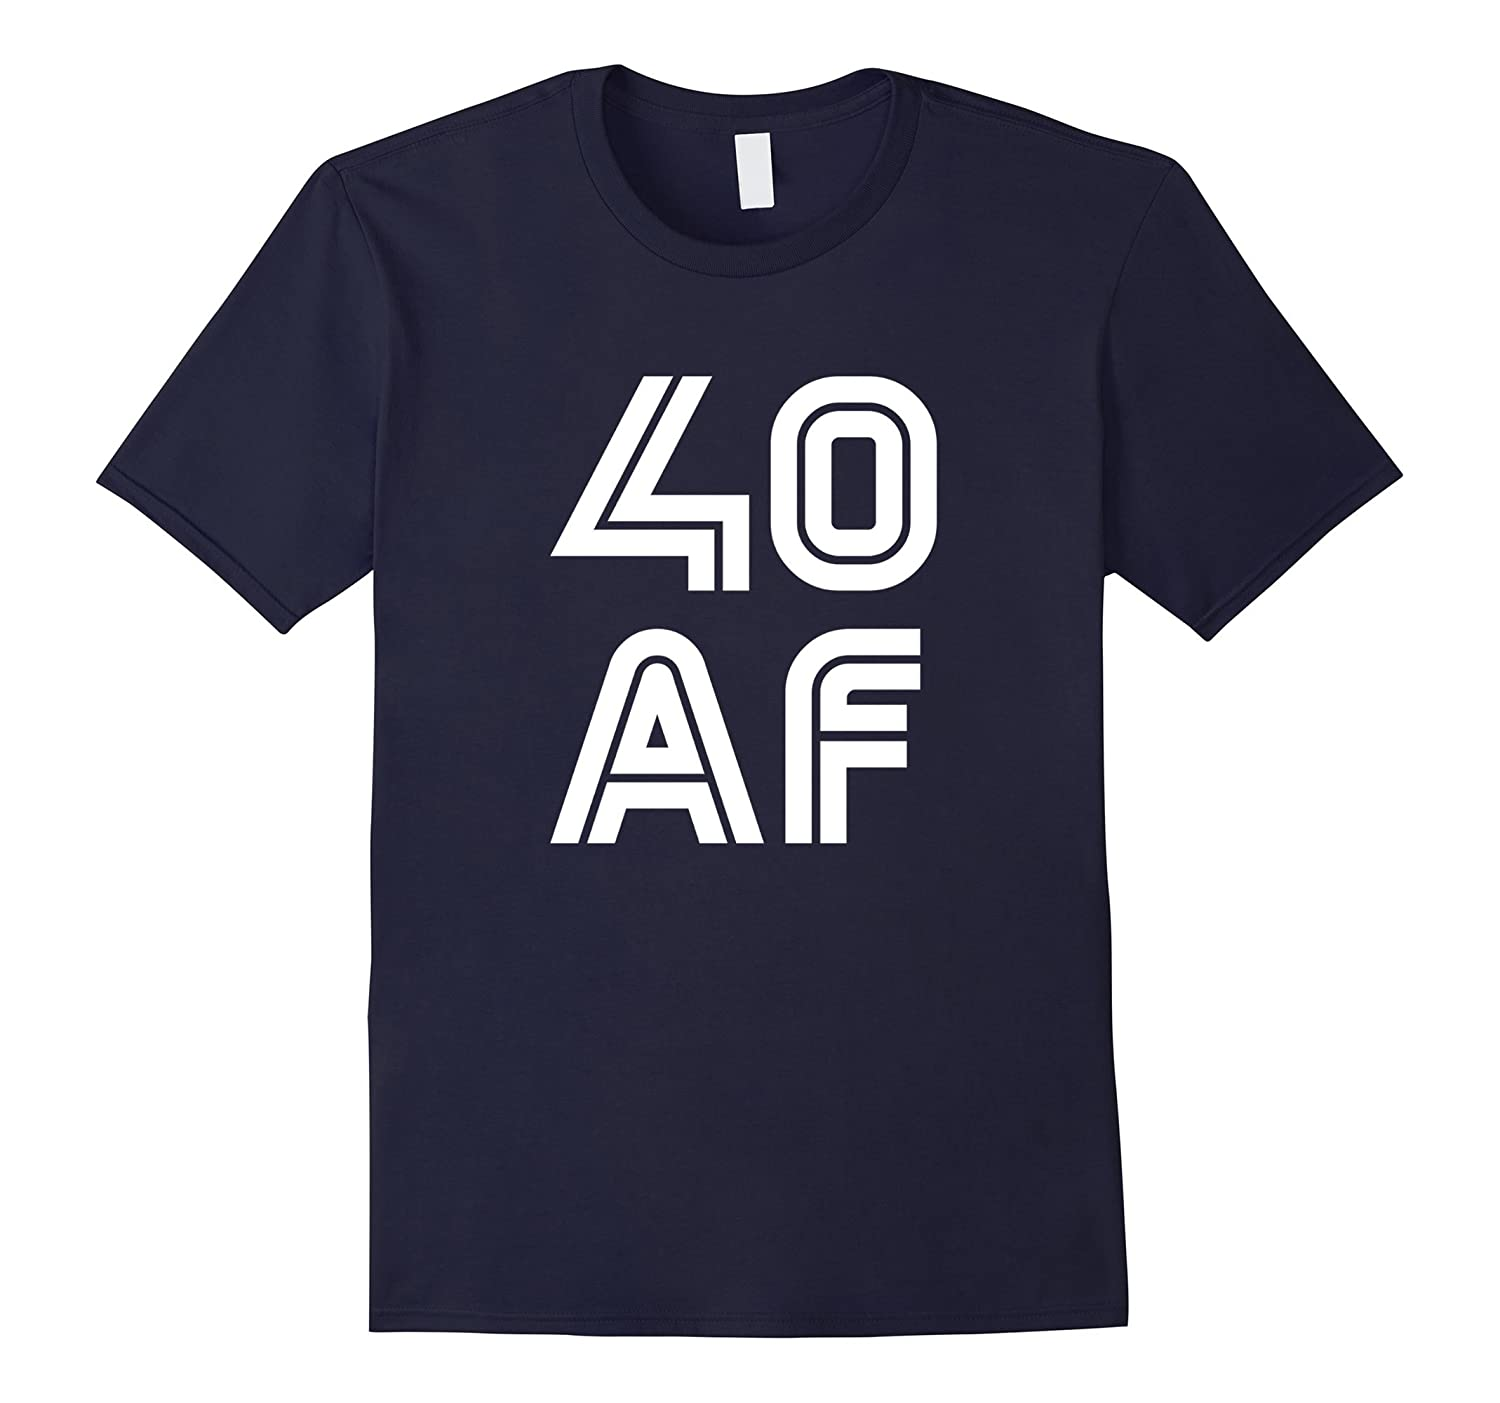 40 AF T Shirt 40th Birthday Tshirt 40 Years Yrs Old Gift Tee-RT